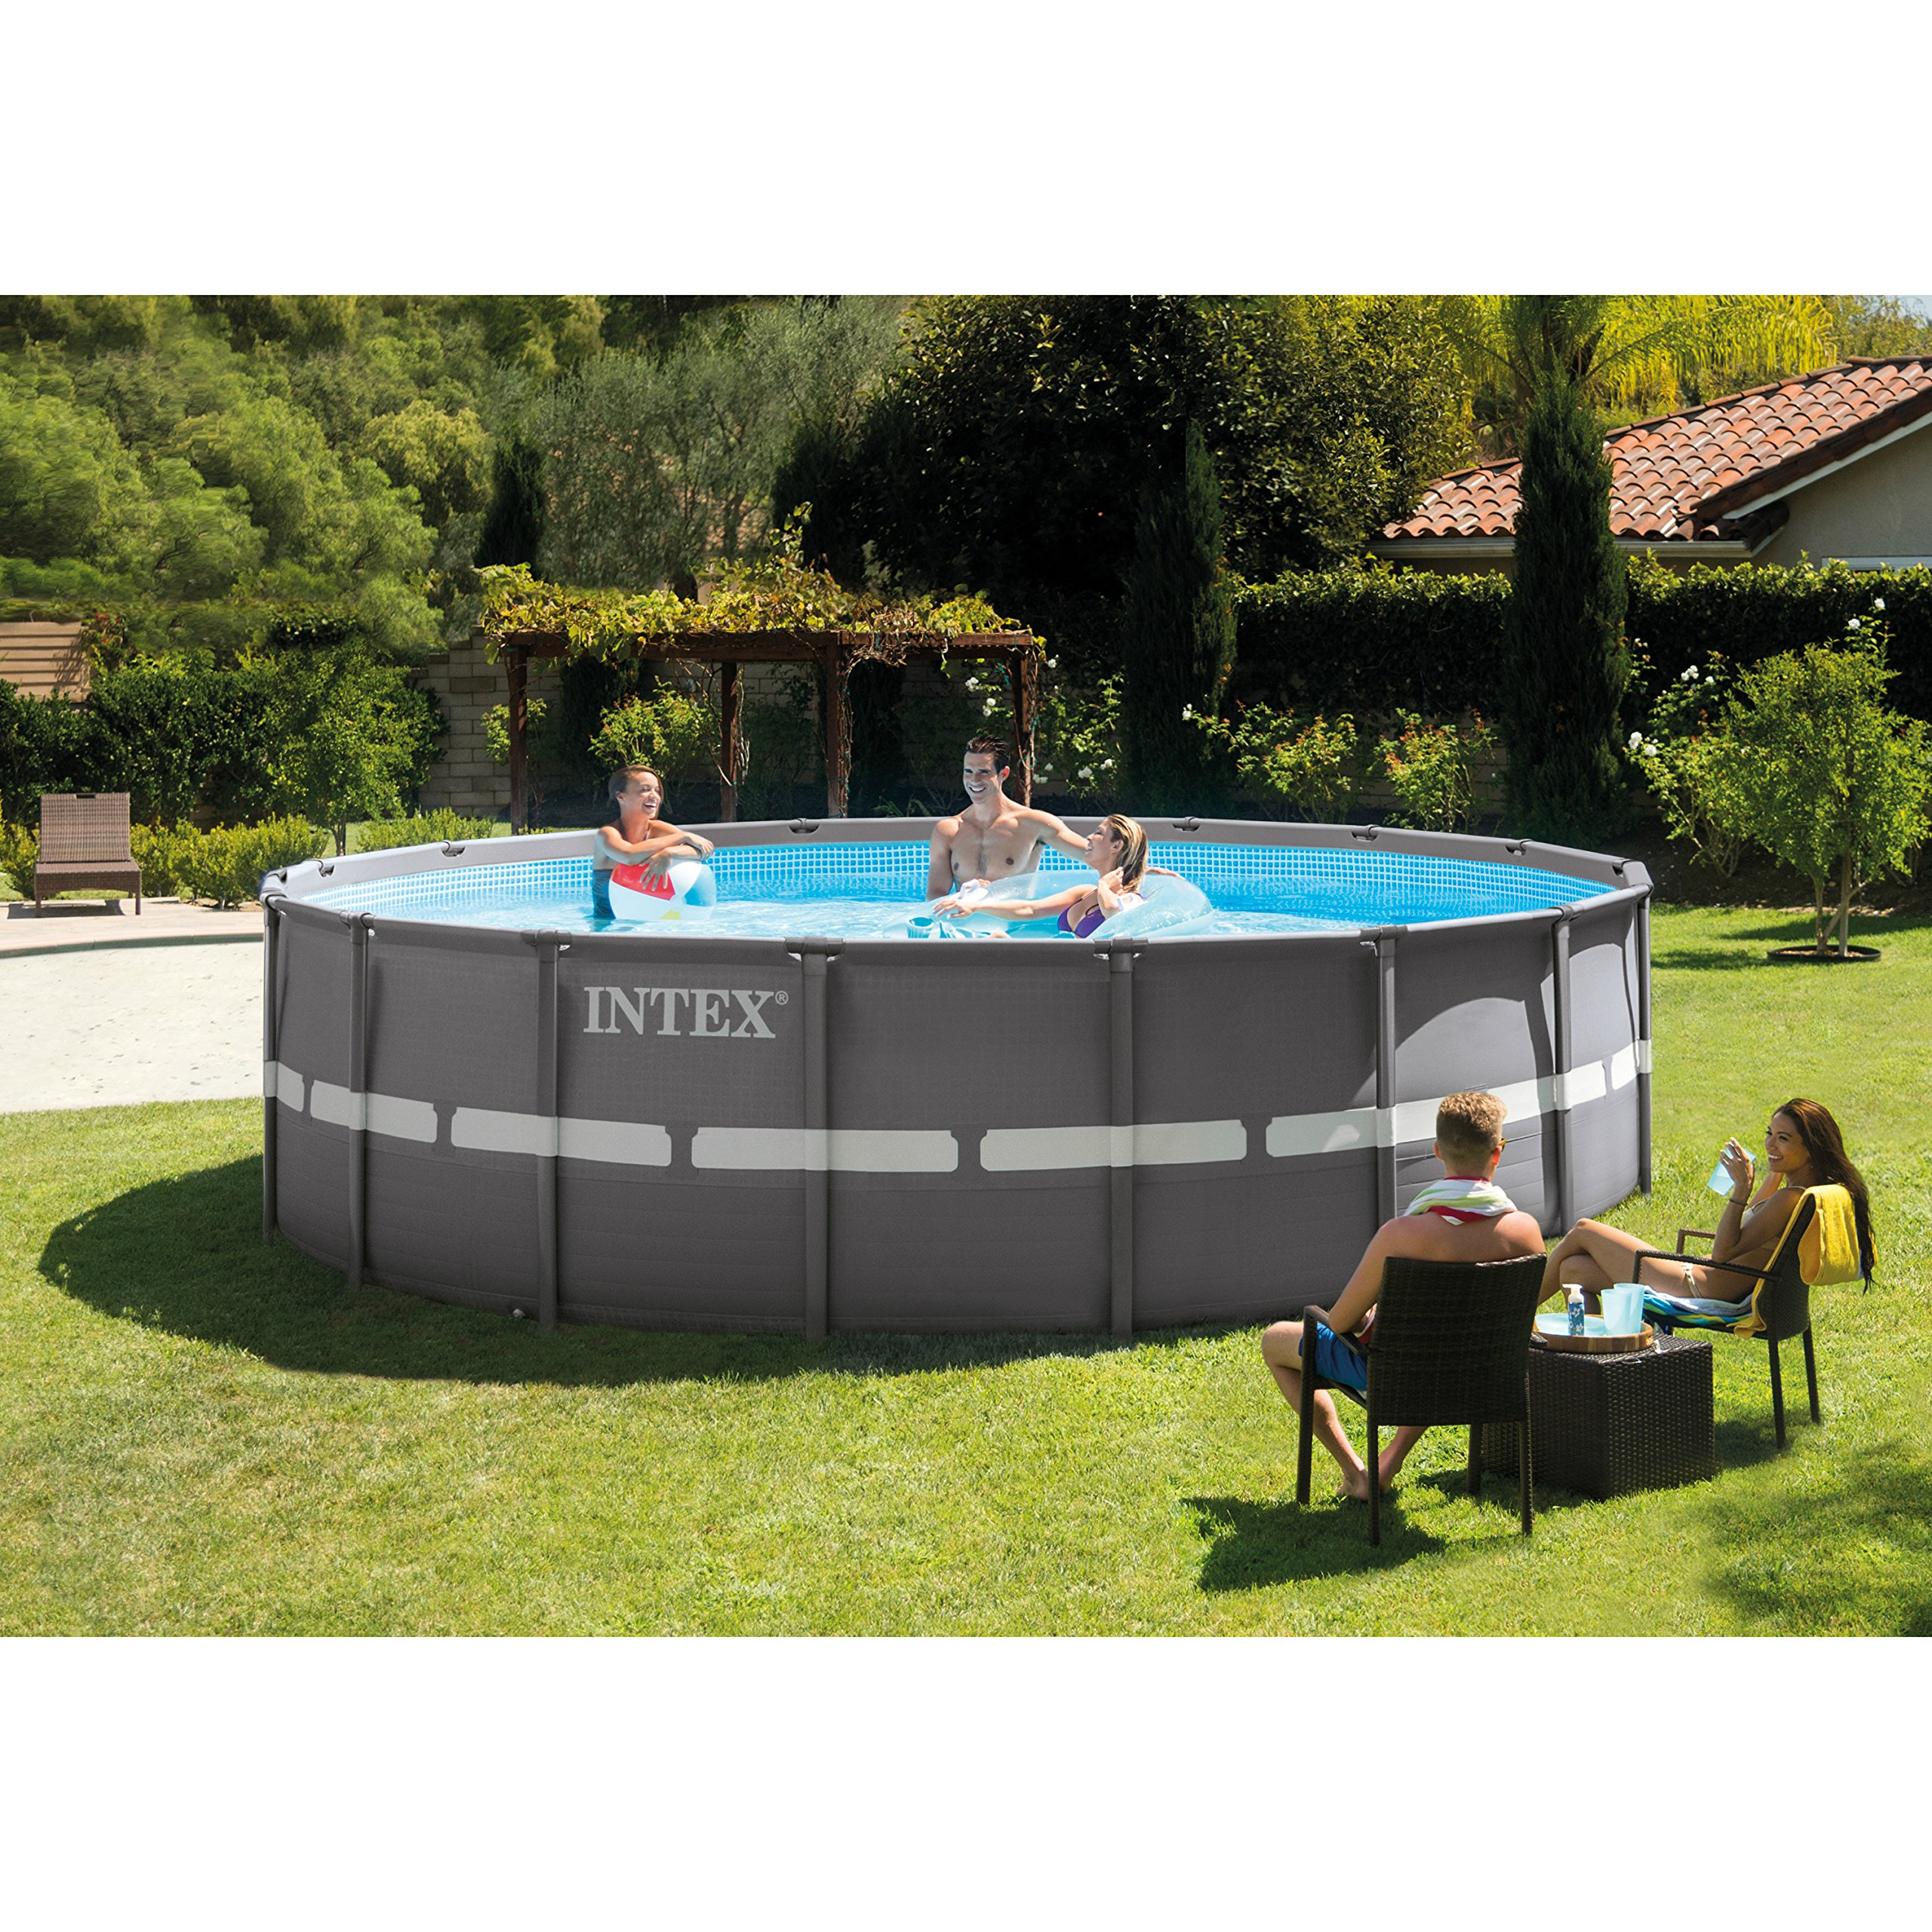 intex ultra frame pool,intex ultra frame